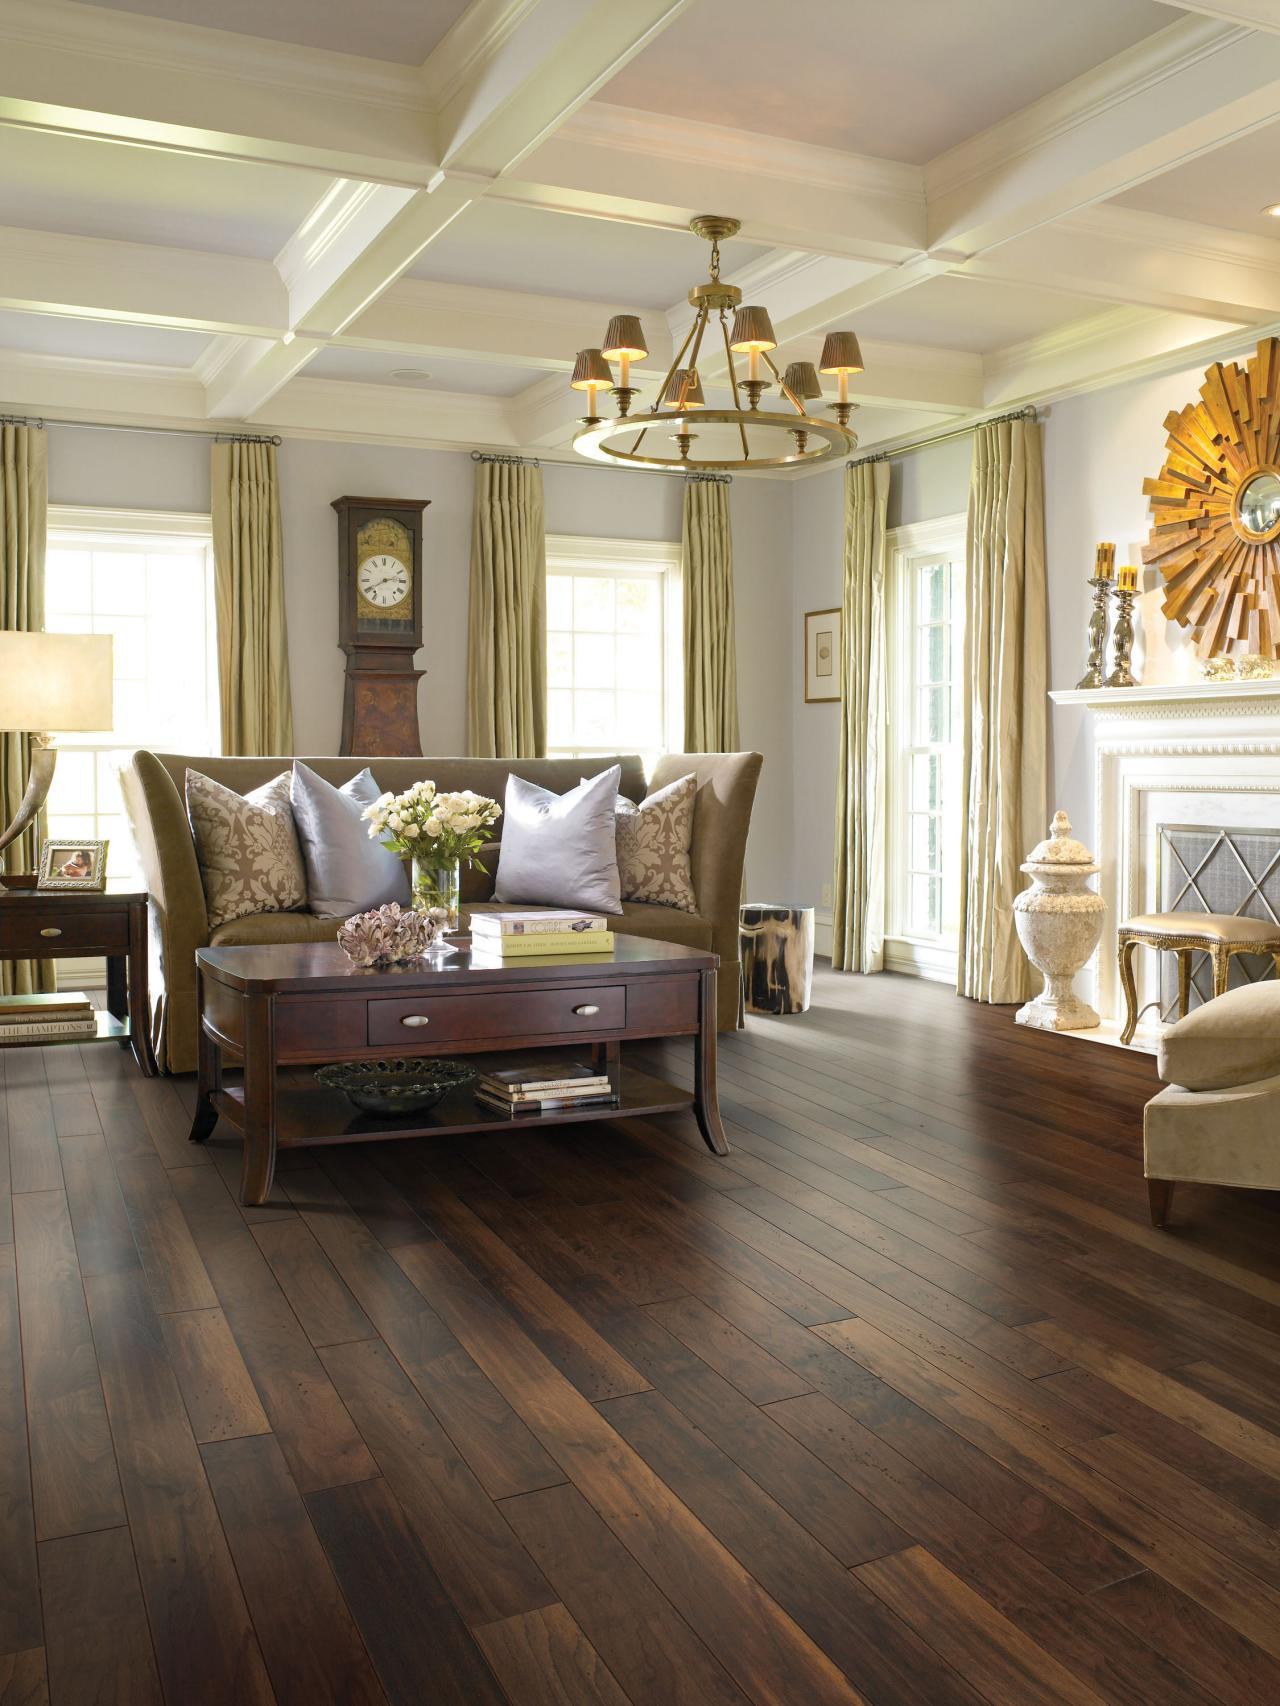 Beau Eco Friendly Option. Distressed Hardwood Floors ...